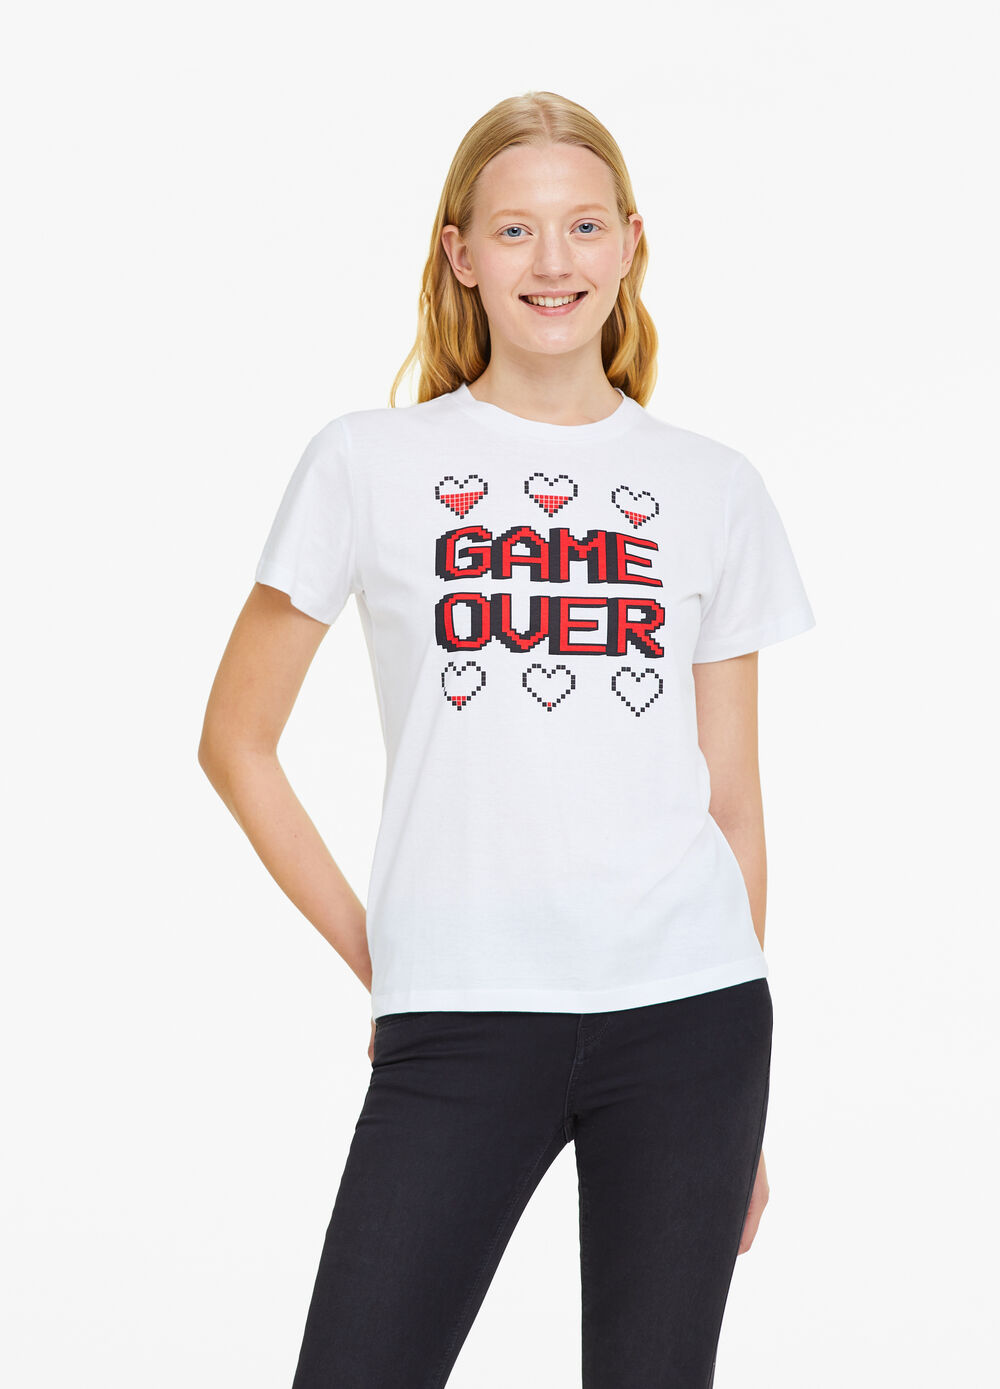 100% cotton T-shirt with lettering and hearts